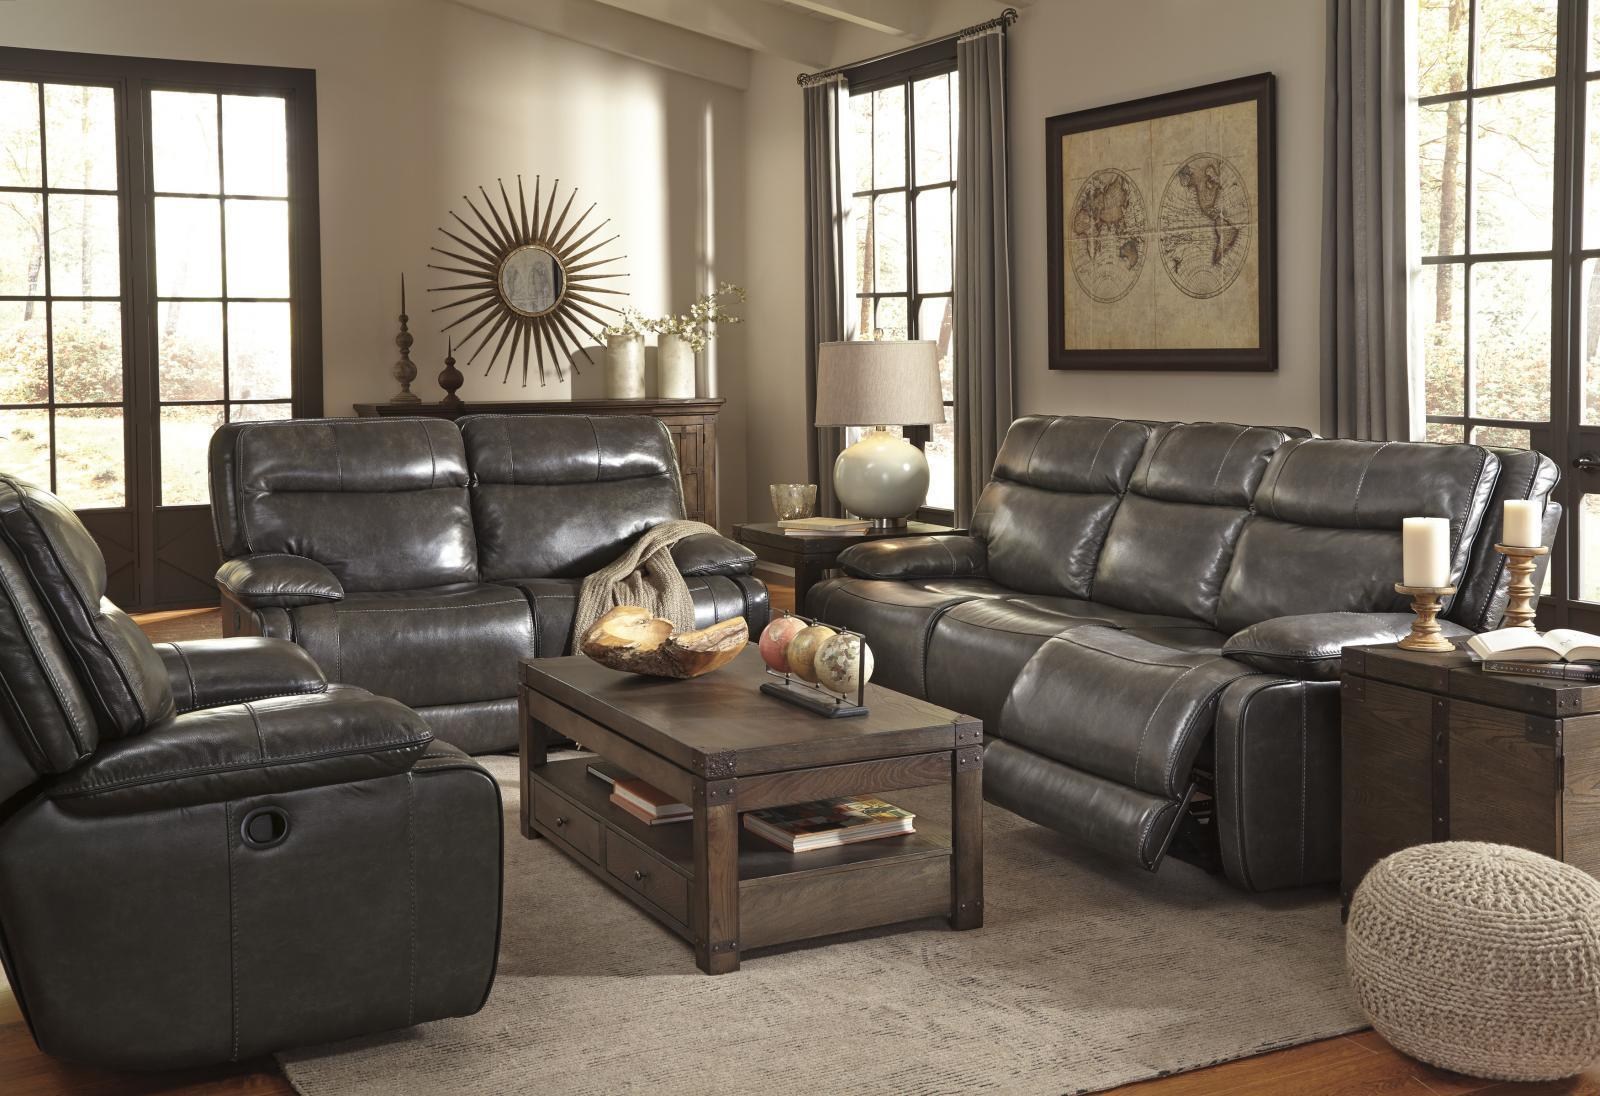 Ashley Palladum 3 Piece Living Room Set in Metal with Power Contemporary Style